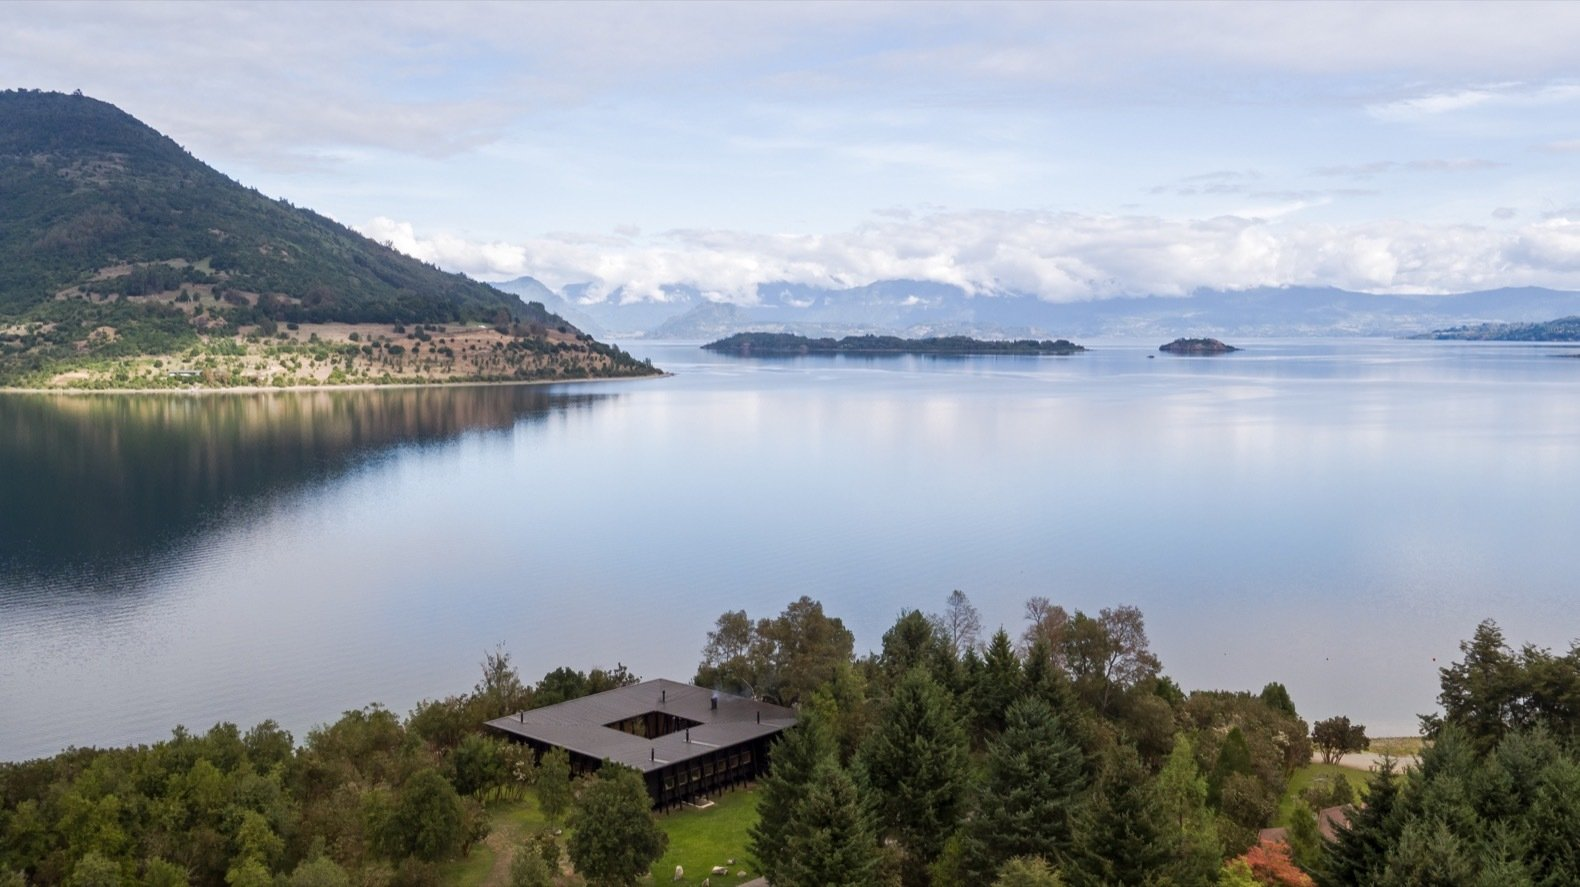 Patio House in Lago Ranco aerial view